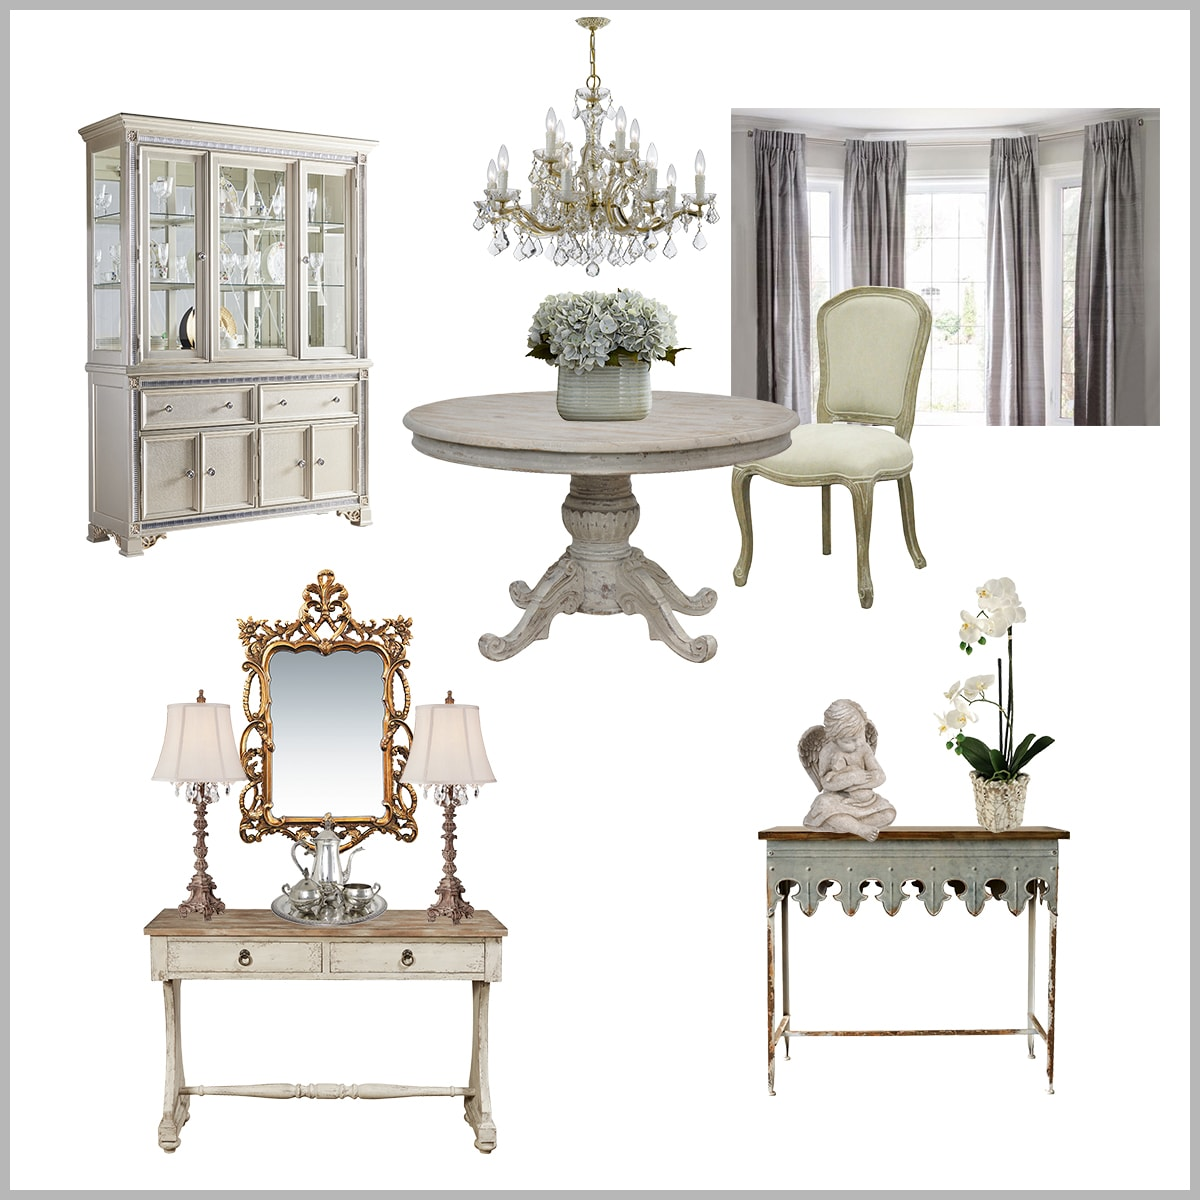 Reader design consultation | formal dining room plan | designthusiasm.com